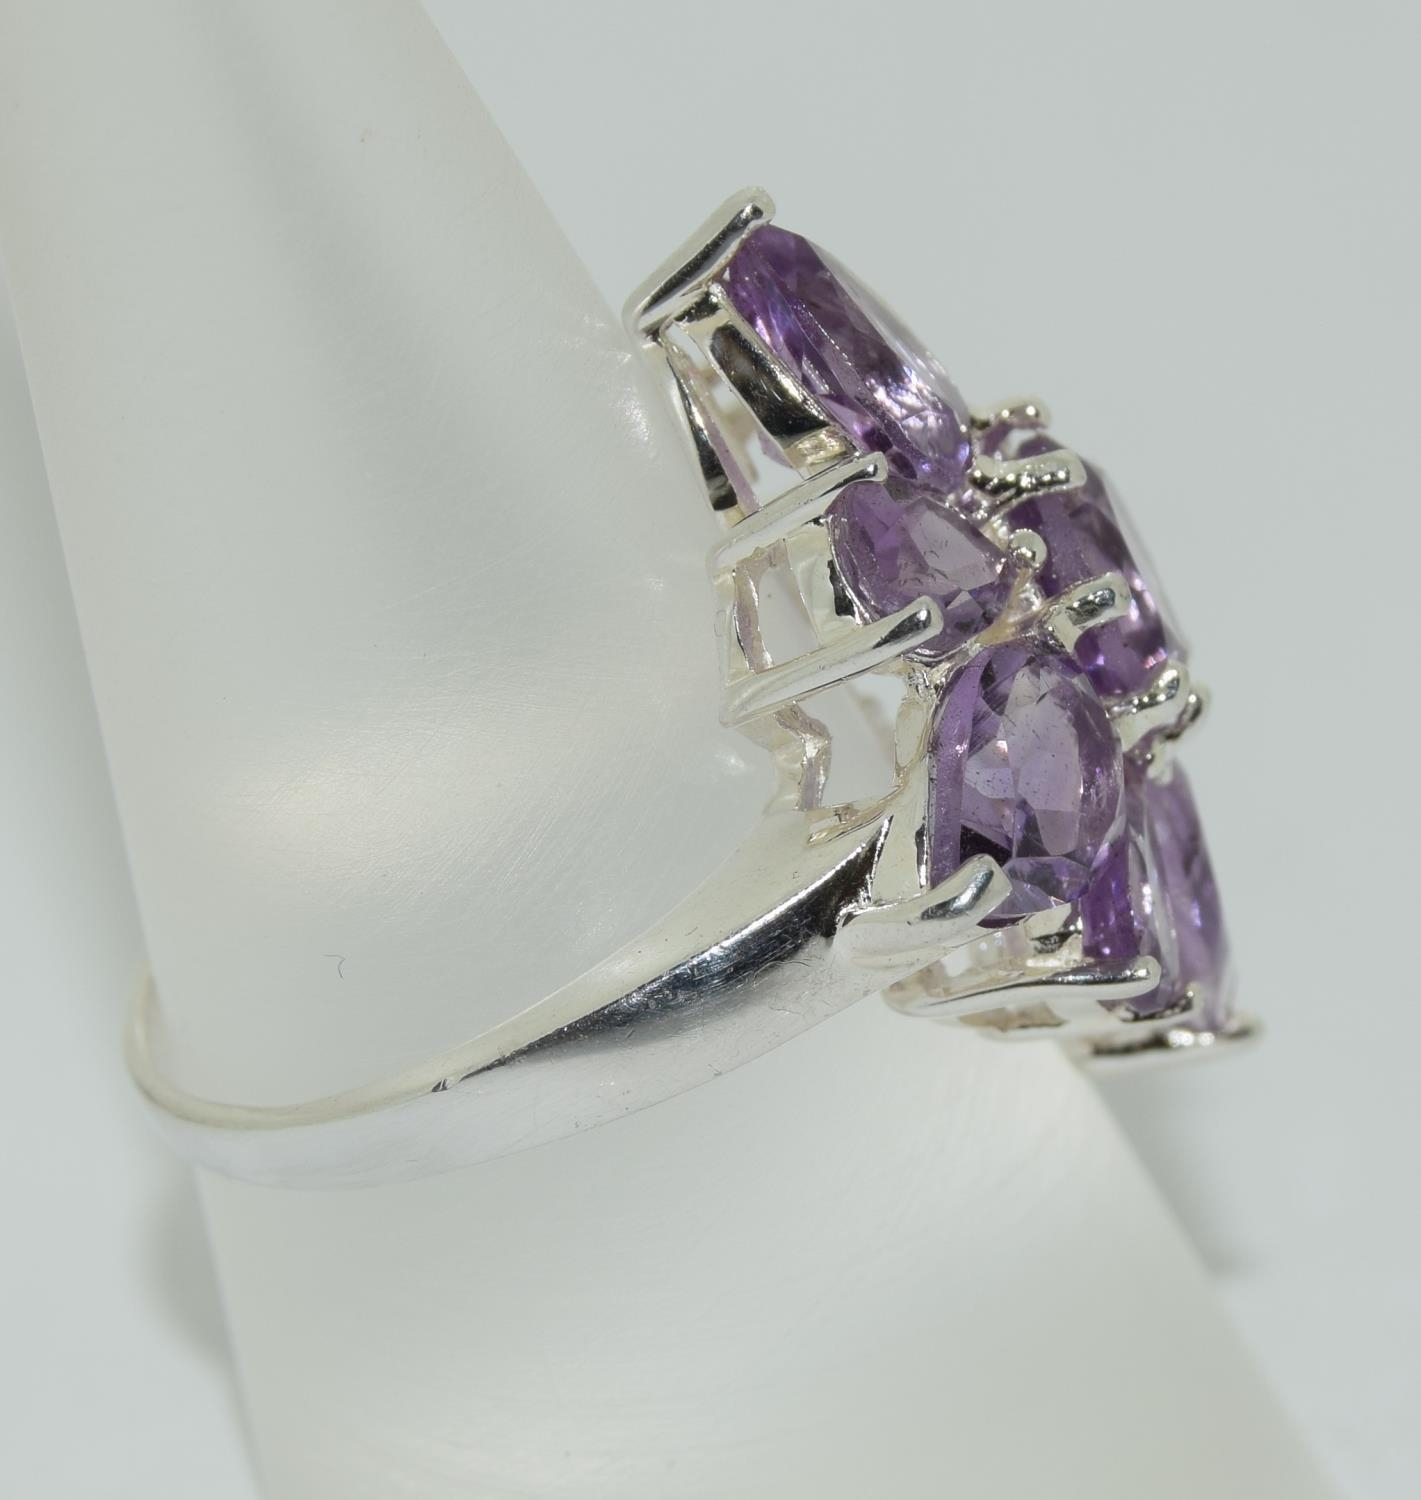 Large Amethyst 925 silver daisy cluster ring, Size P. - Image 2 of 3